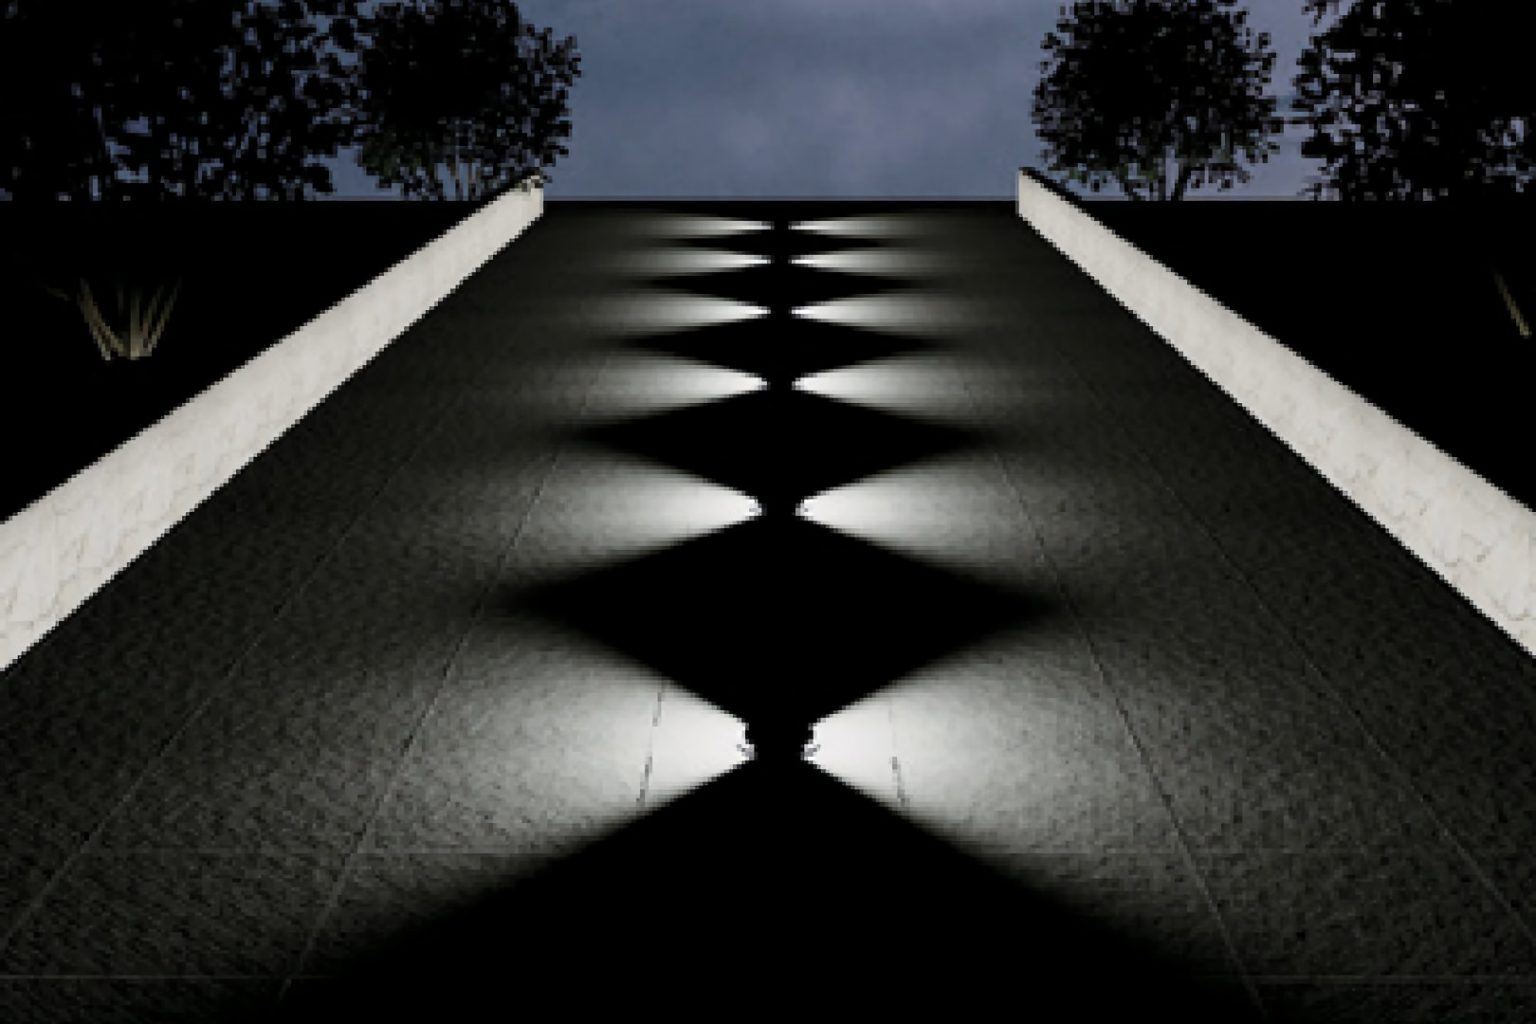 microngroup-led-lighting-outdoor-driveway